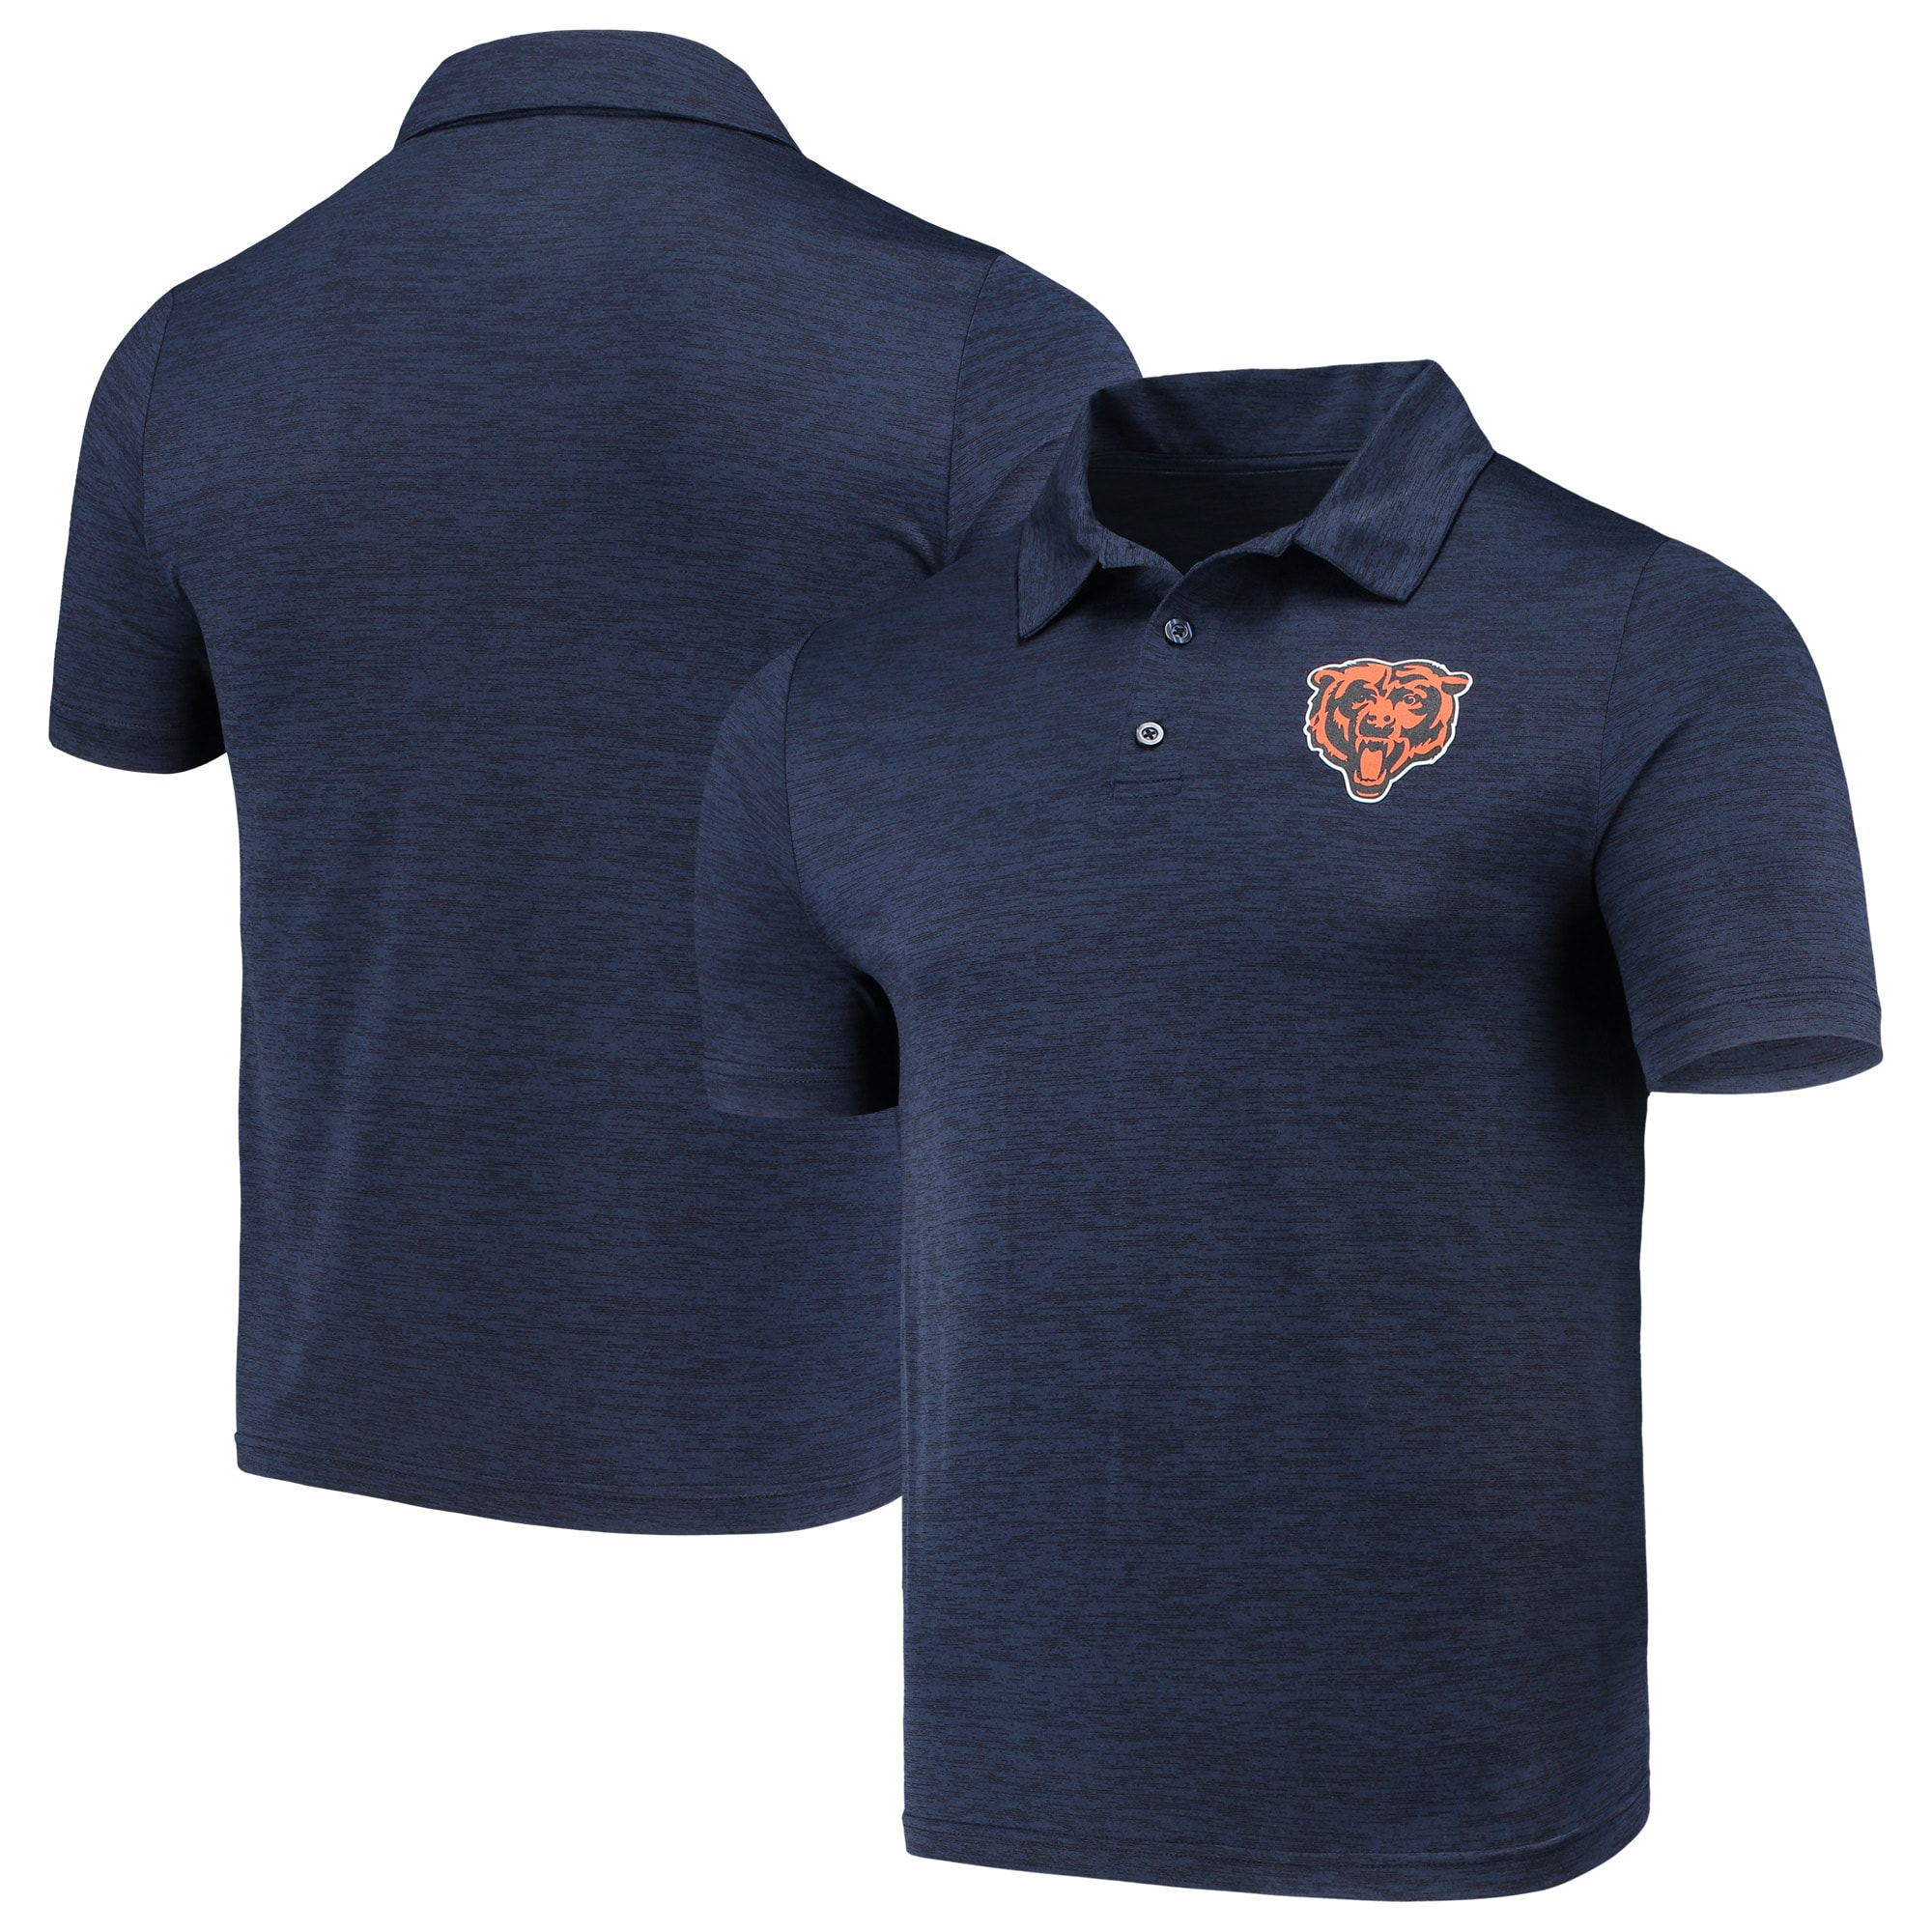 Chicago Bears Majestic Iconic Positive Production Polo - Heathered Navy